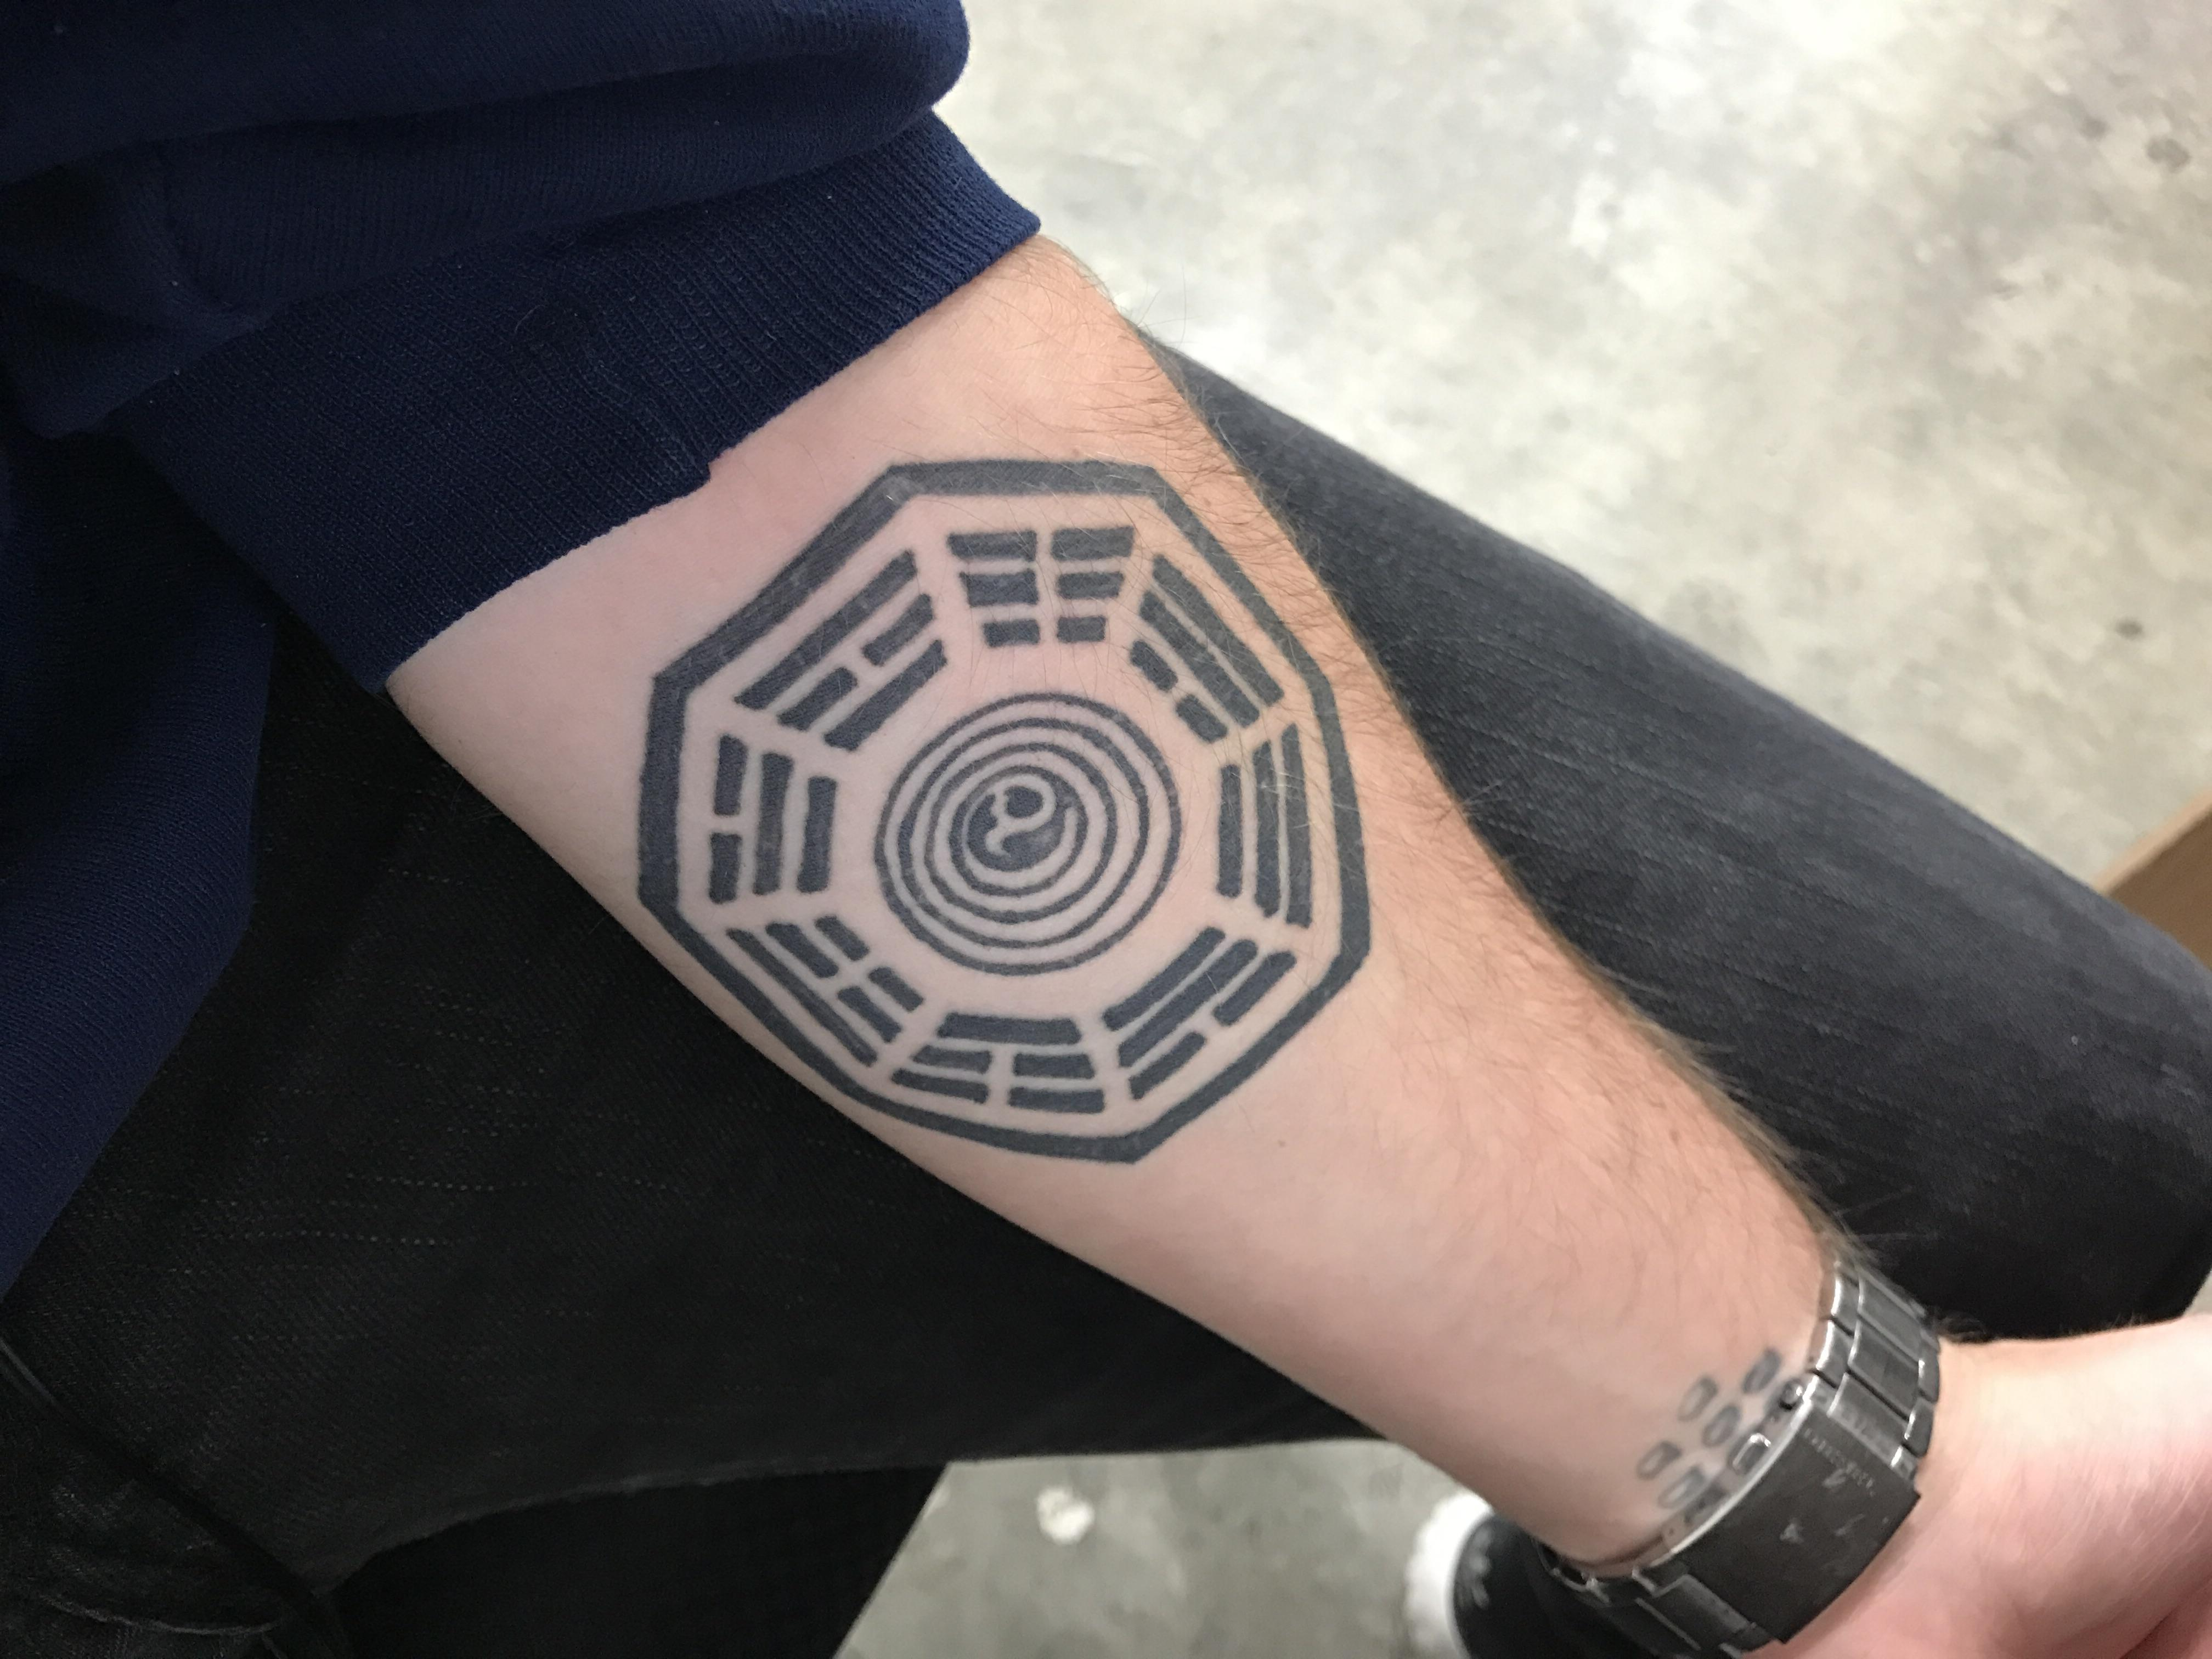 lost-tattoo-reddit-fukevin-1531332265732-1531332269108.jpg